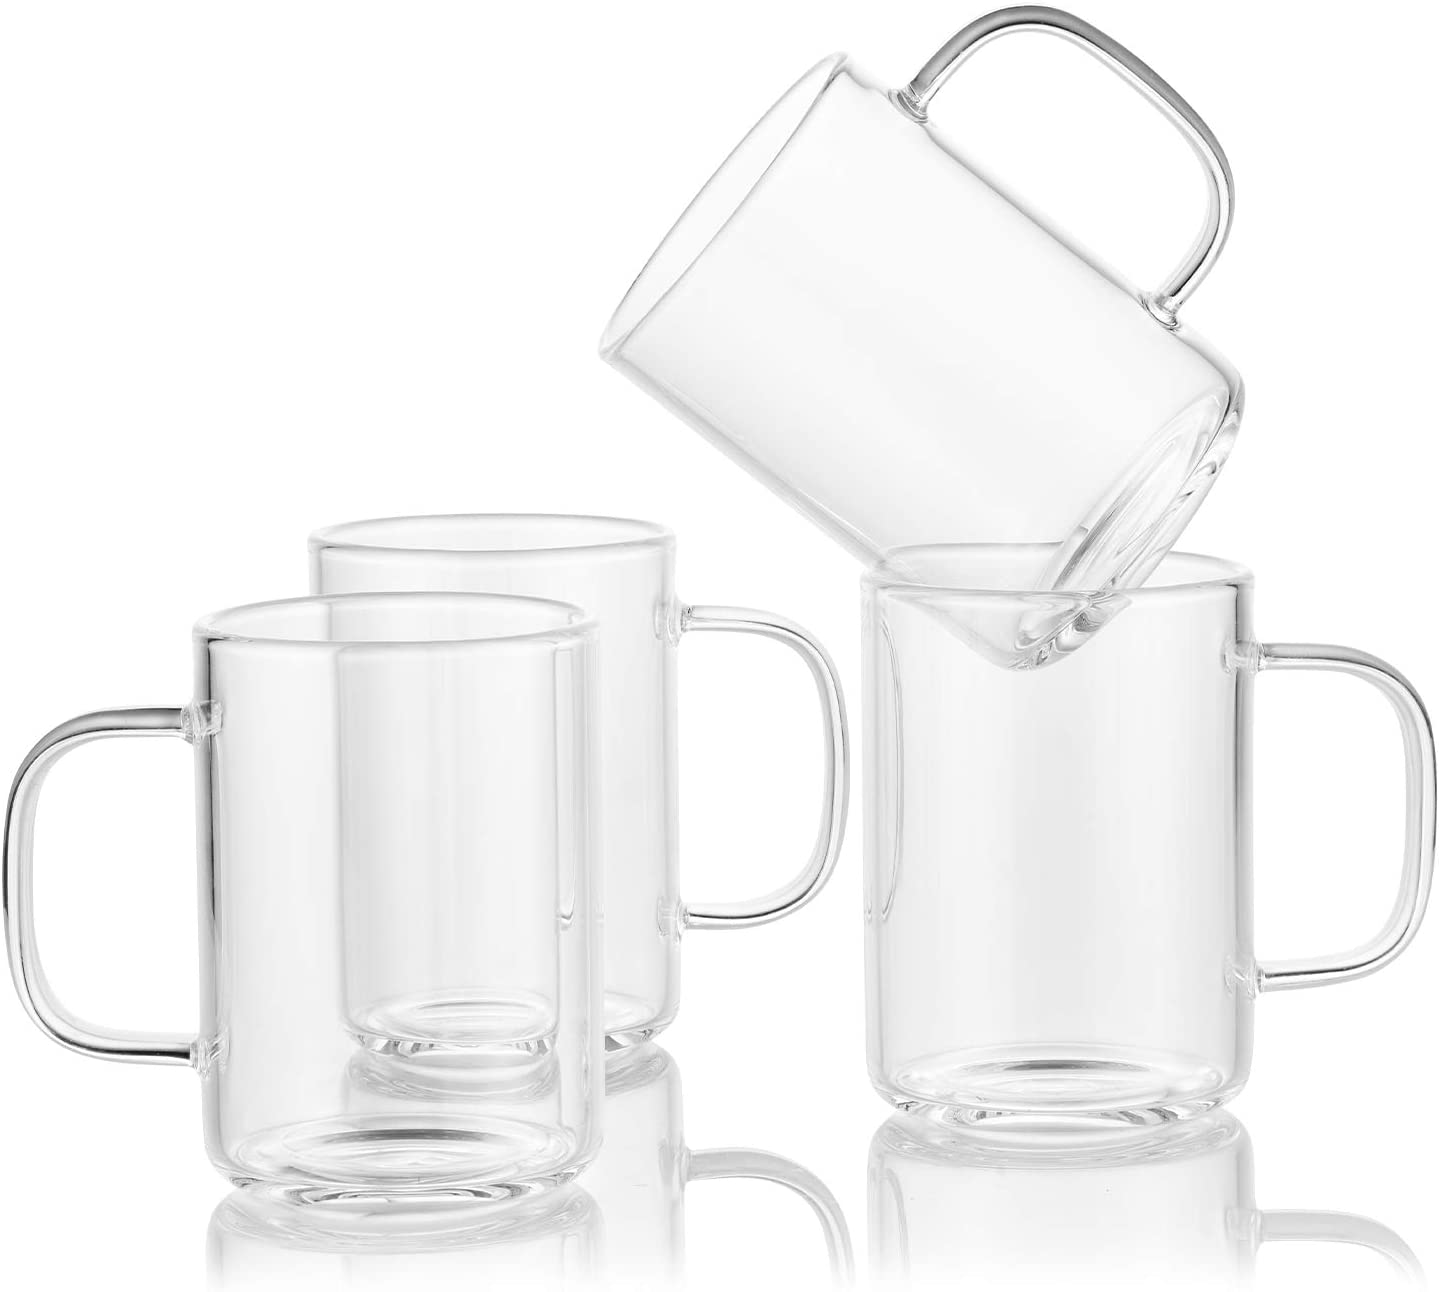 Enindel 3025.02 Simple Style Glass Latte Mug, Coffee Cup, Clear, 9 OZ, Set of 4